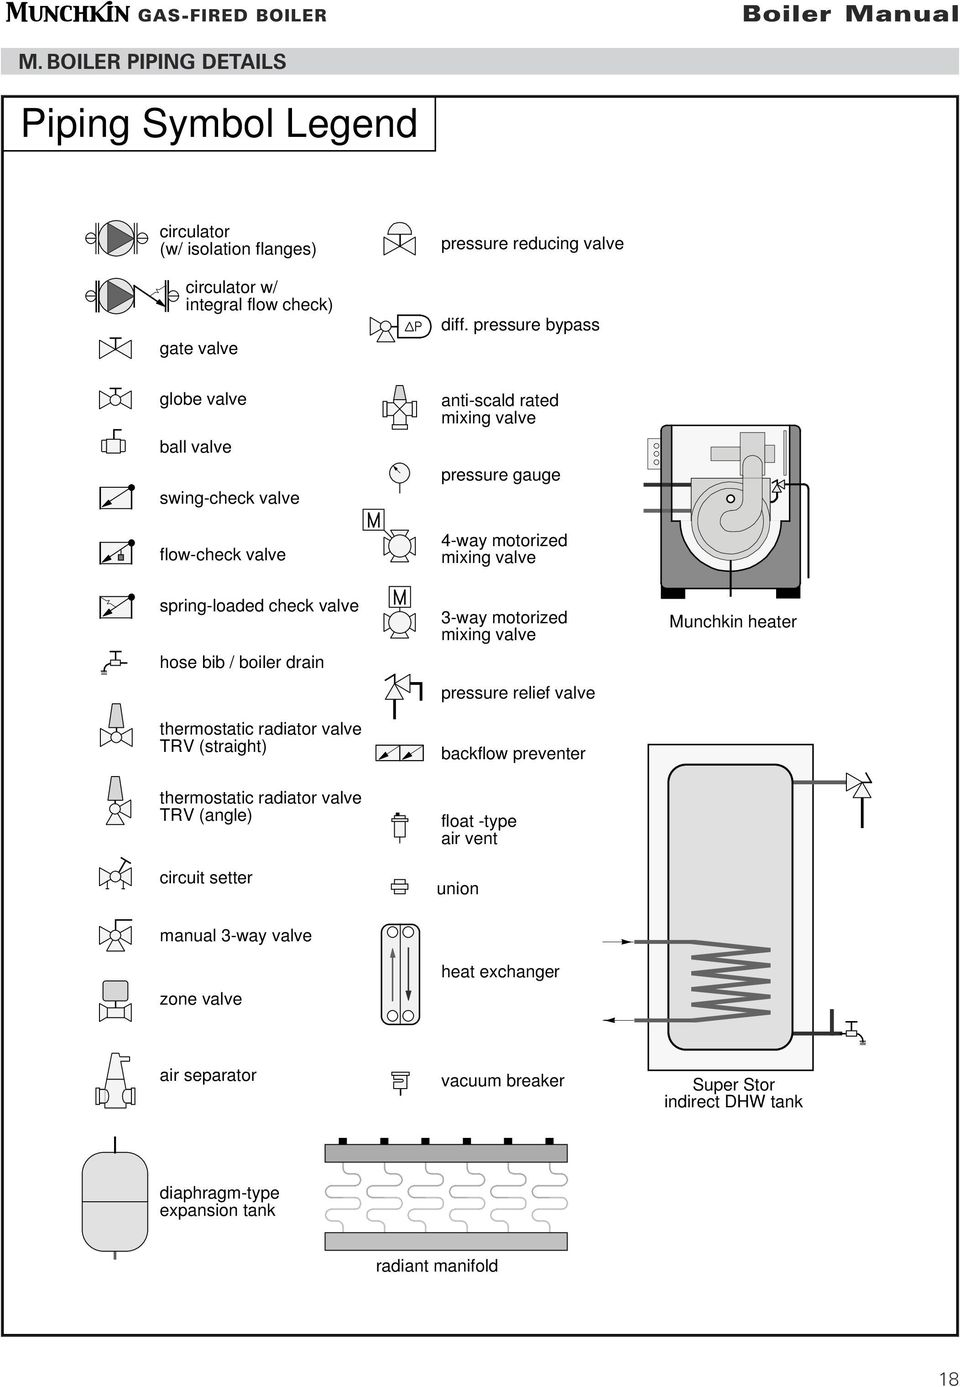 freezer wiring schematic sears 106 720461 trusted wiring diagrams cooler wiring schematic diagram freezer wiring tl 53bf basic guide wiring diagram \\u2022 walk in freezer electrical ladder diagram freezer wiring schematic sears 106 720461